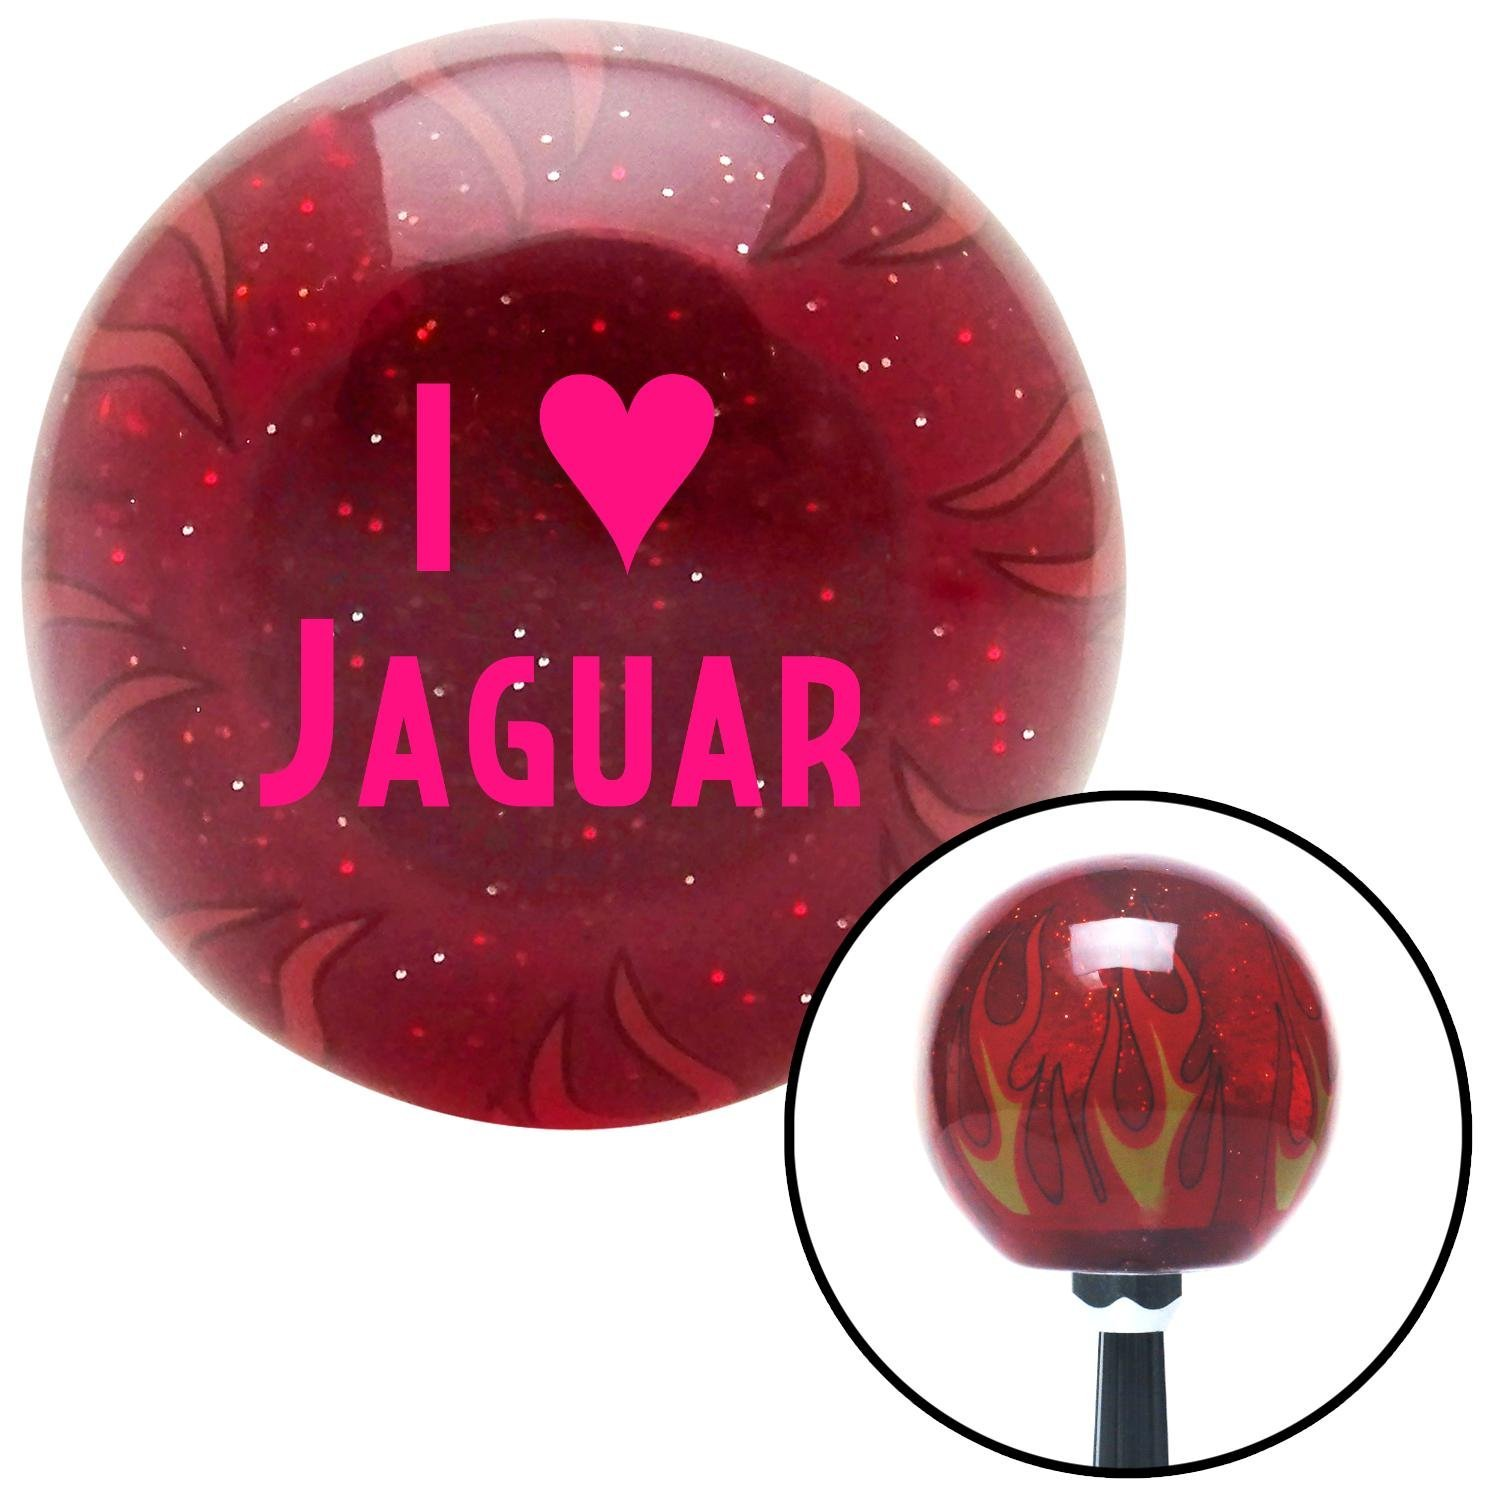 Pink I 3 Jaguar American Shifter 237341 Red Flame Metal Flake Shift Knob with M16 x 1.5 Insert